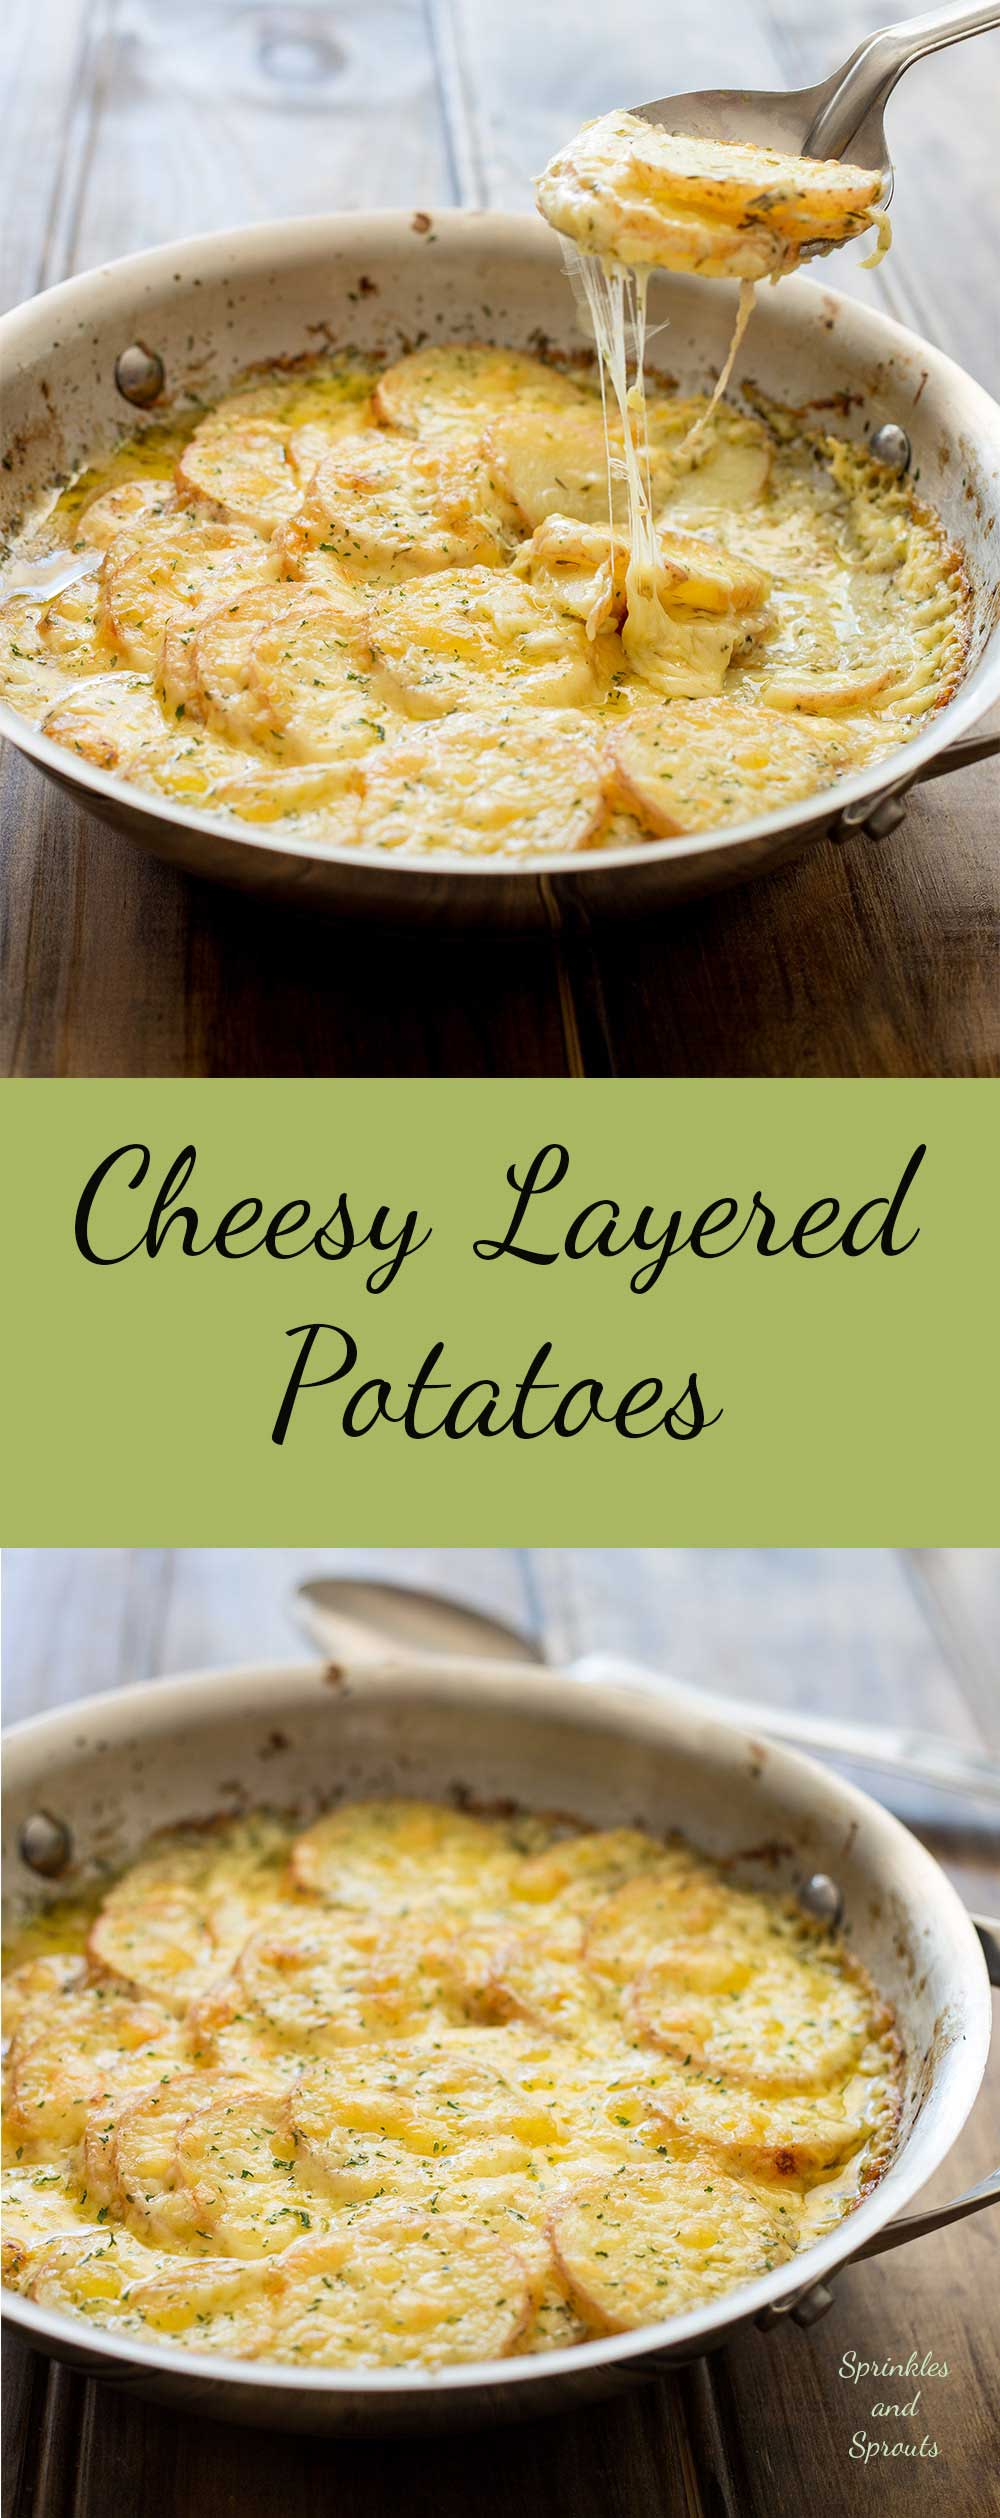 Cheesy Layered Potatoes Sprinkles And Sprouts